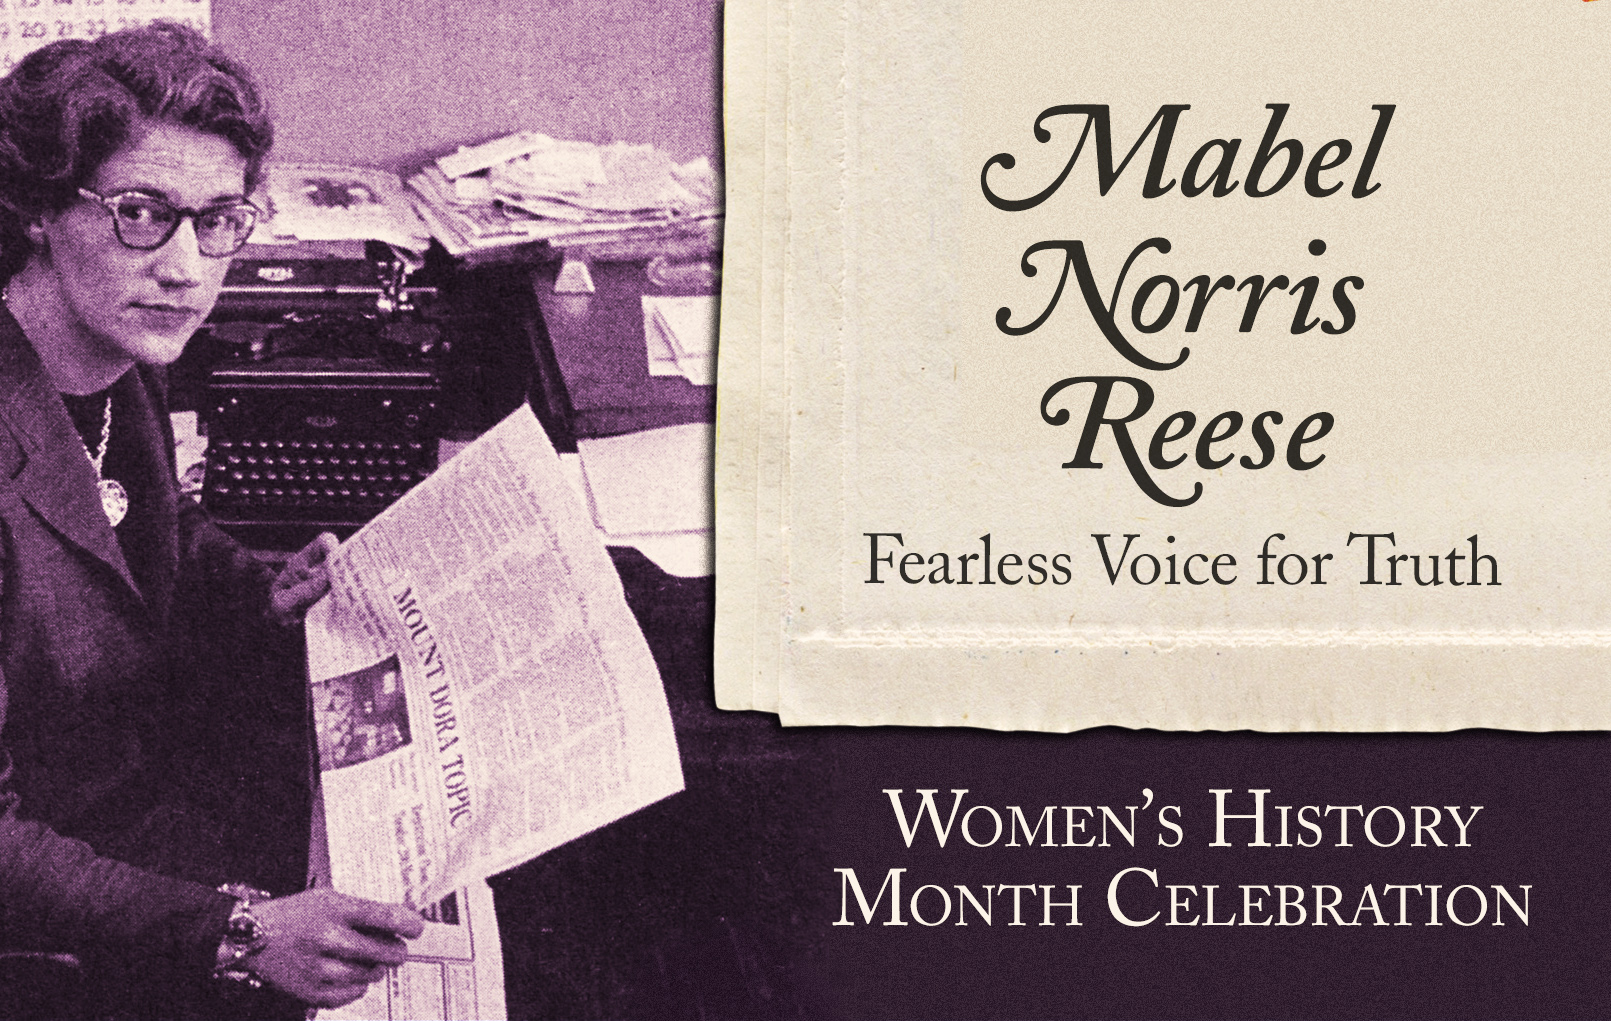 Mabel Norris Reese: Fearless Voice for Truth